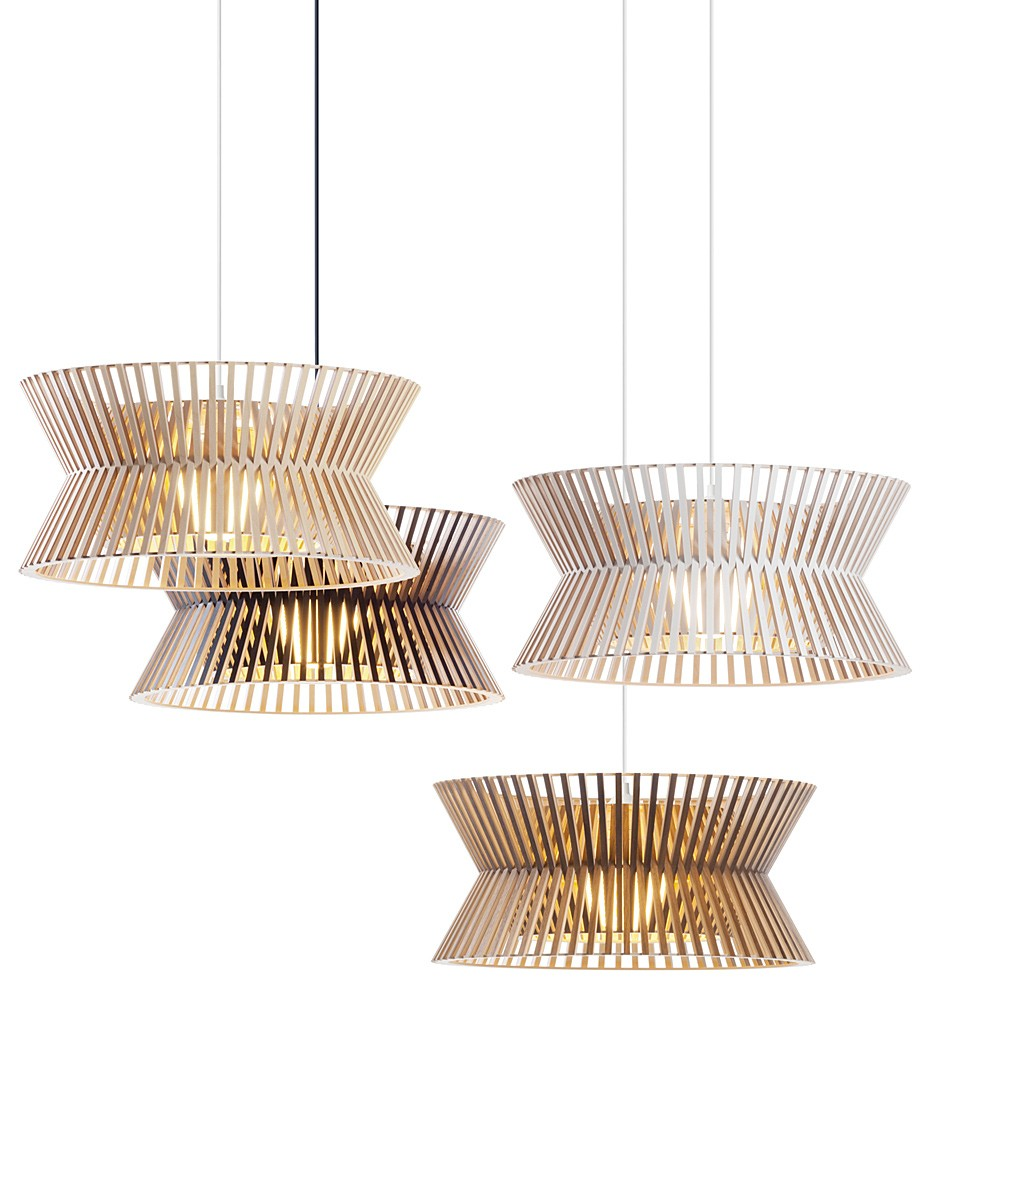 Suspensions Scandinaves Secto Design Meubles Et Objets